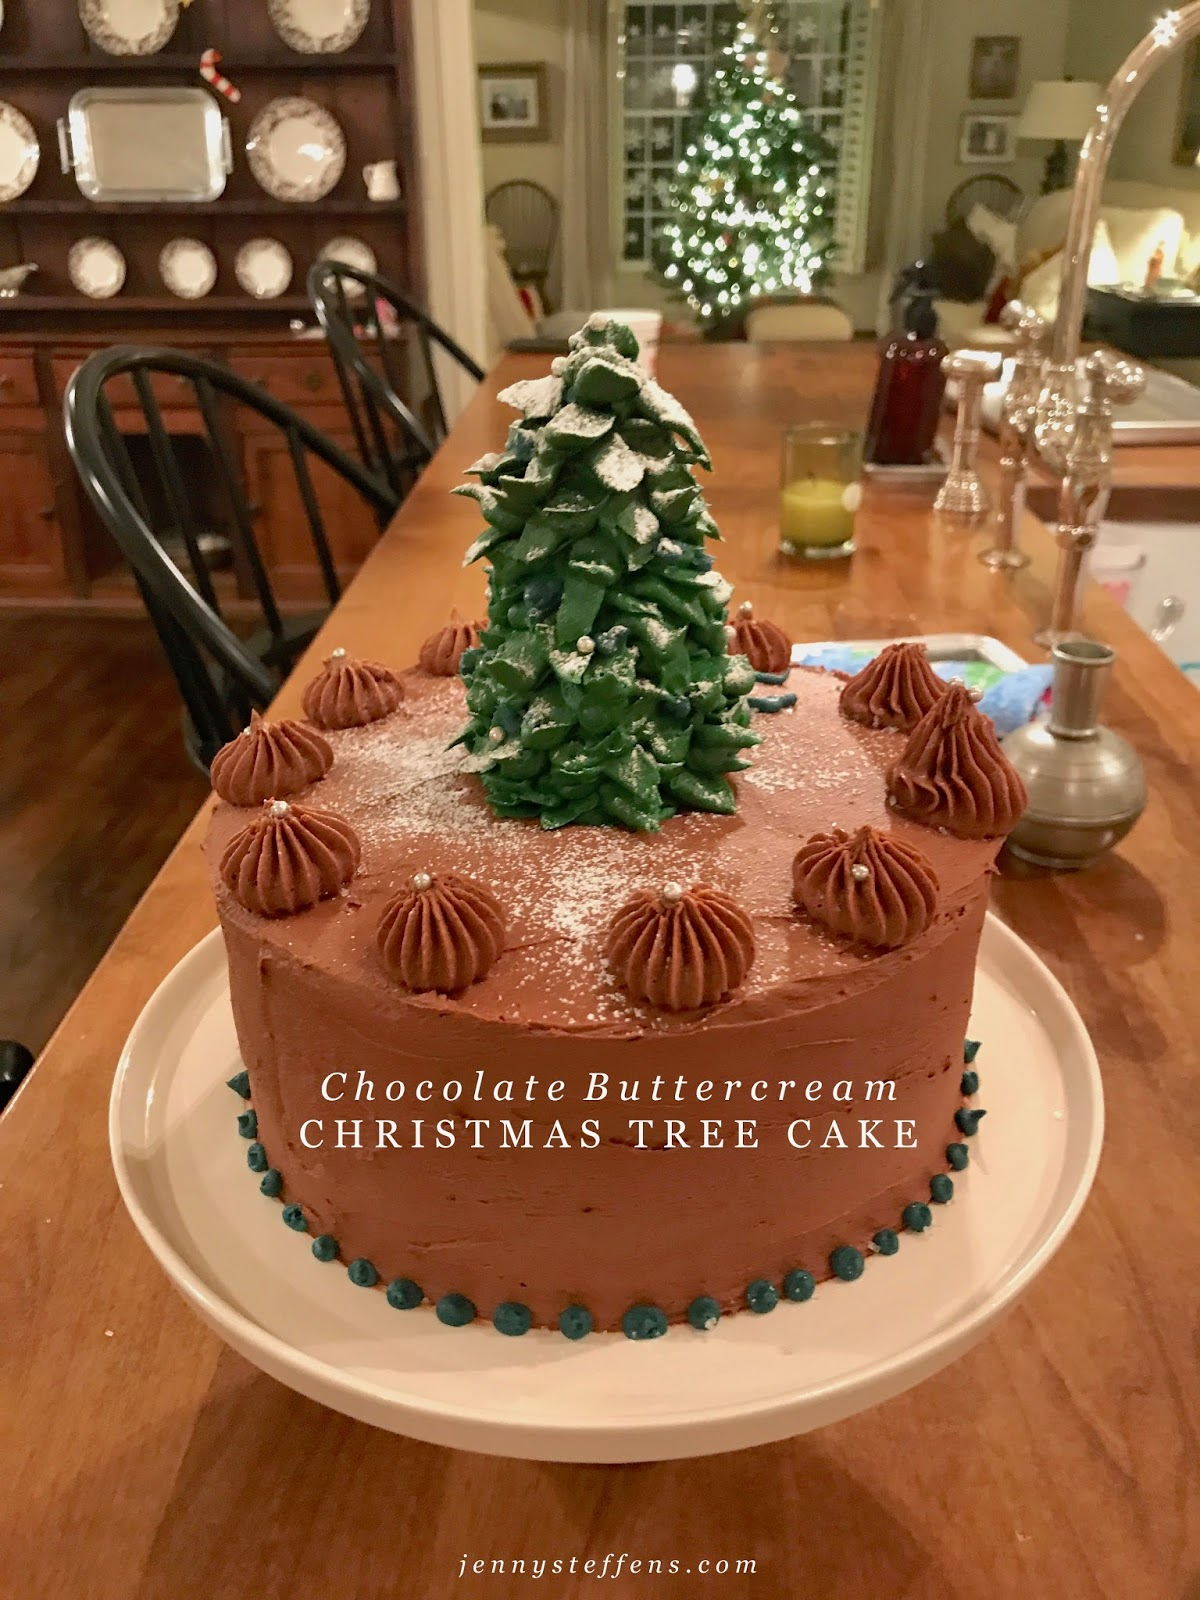 Jenny Steffens Hobick Chocolate Buttercream Christmas Tree Cake